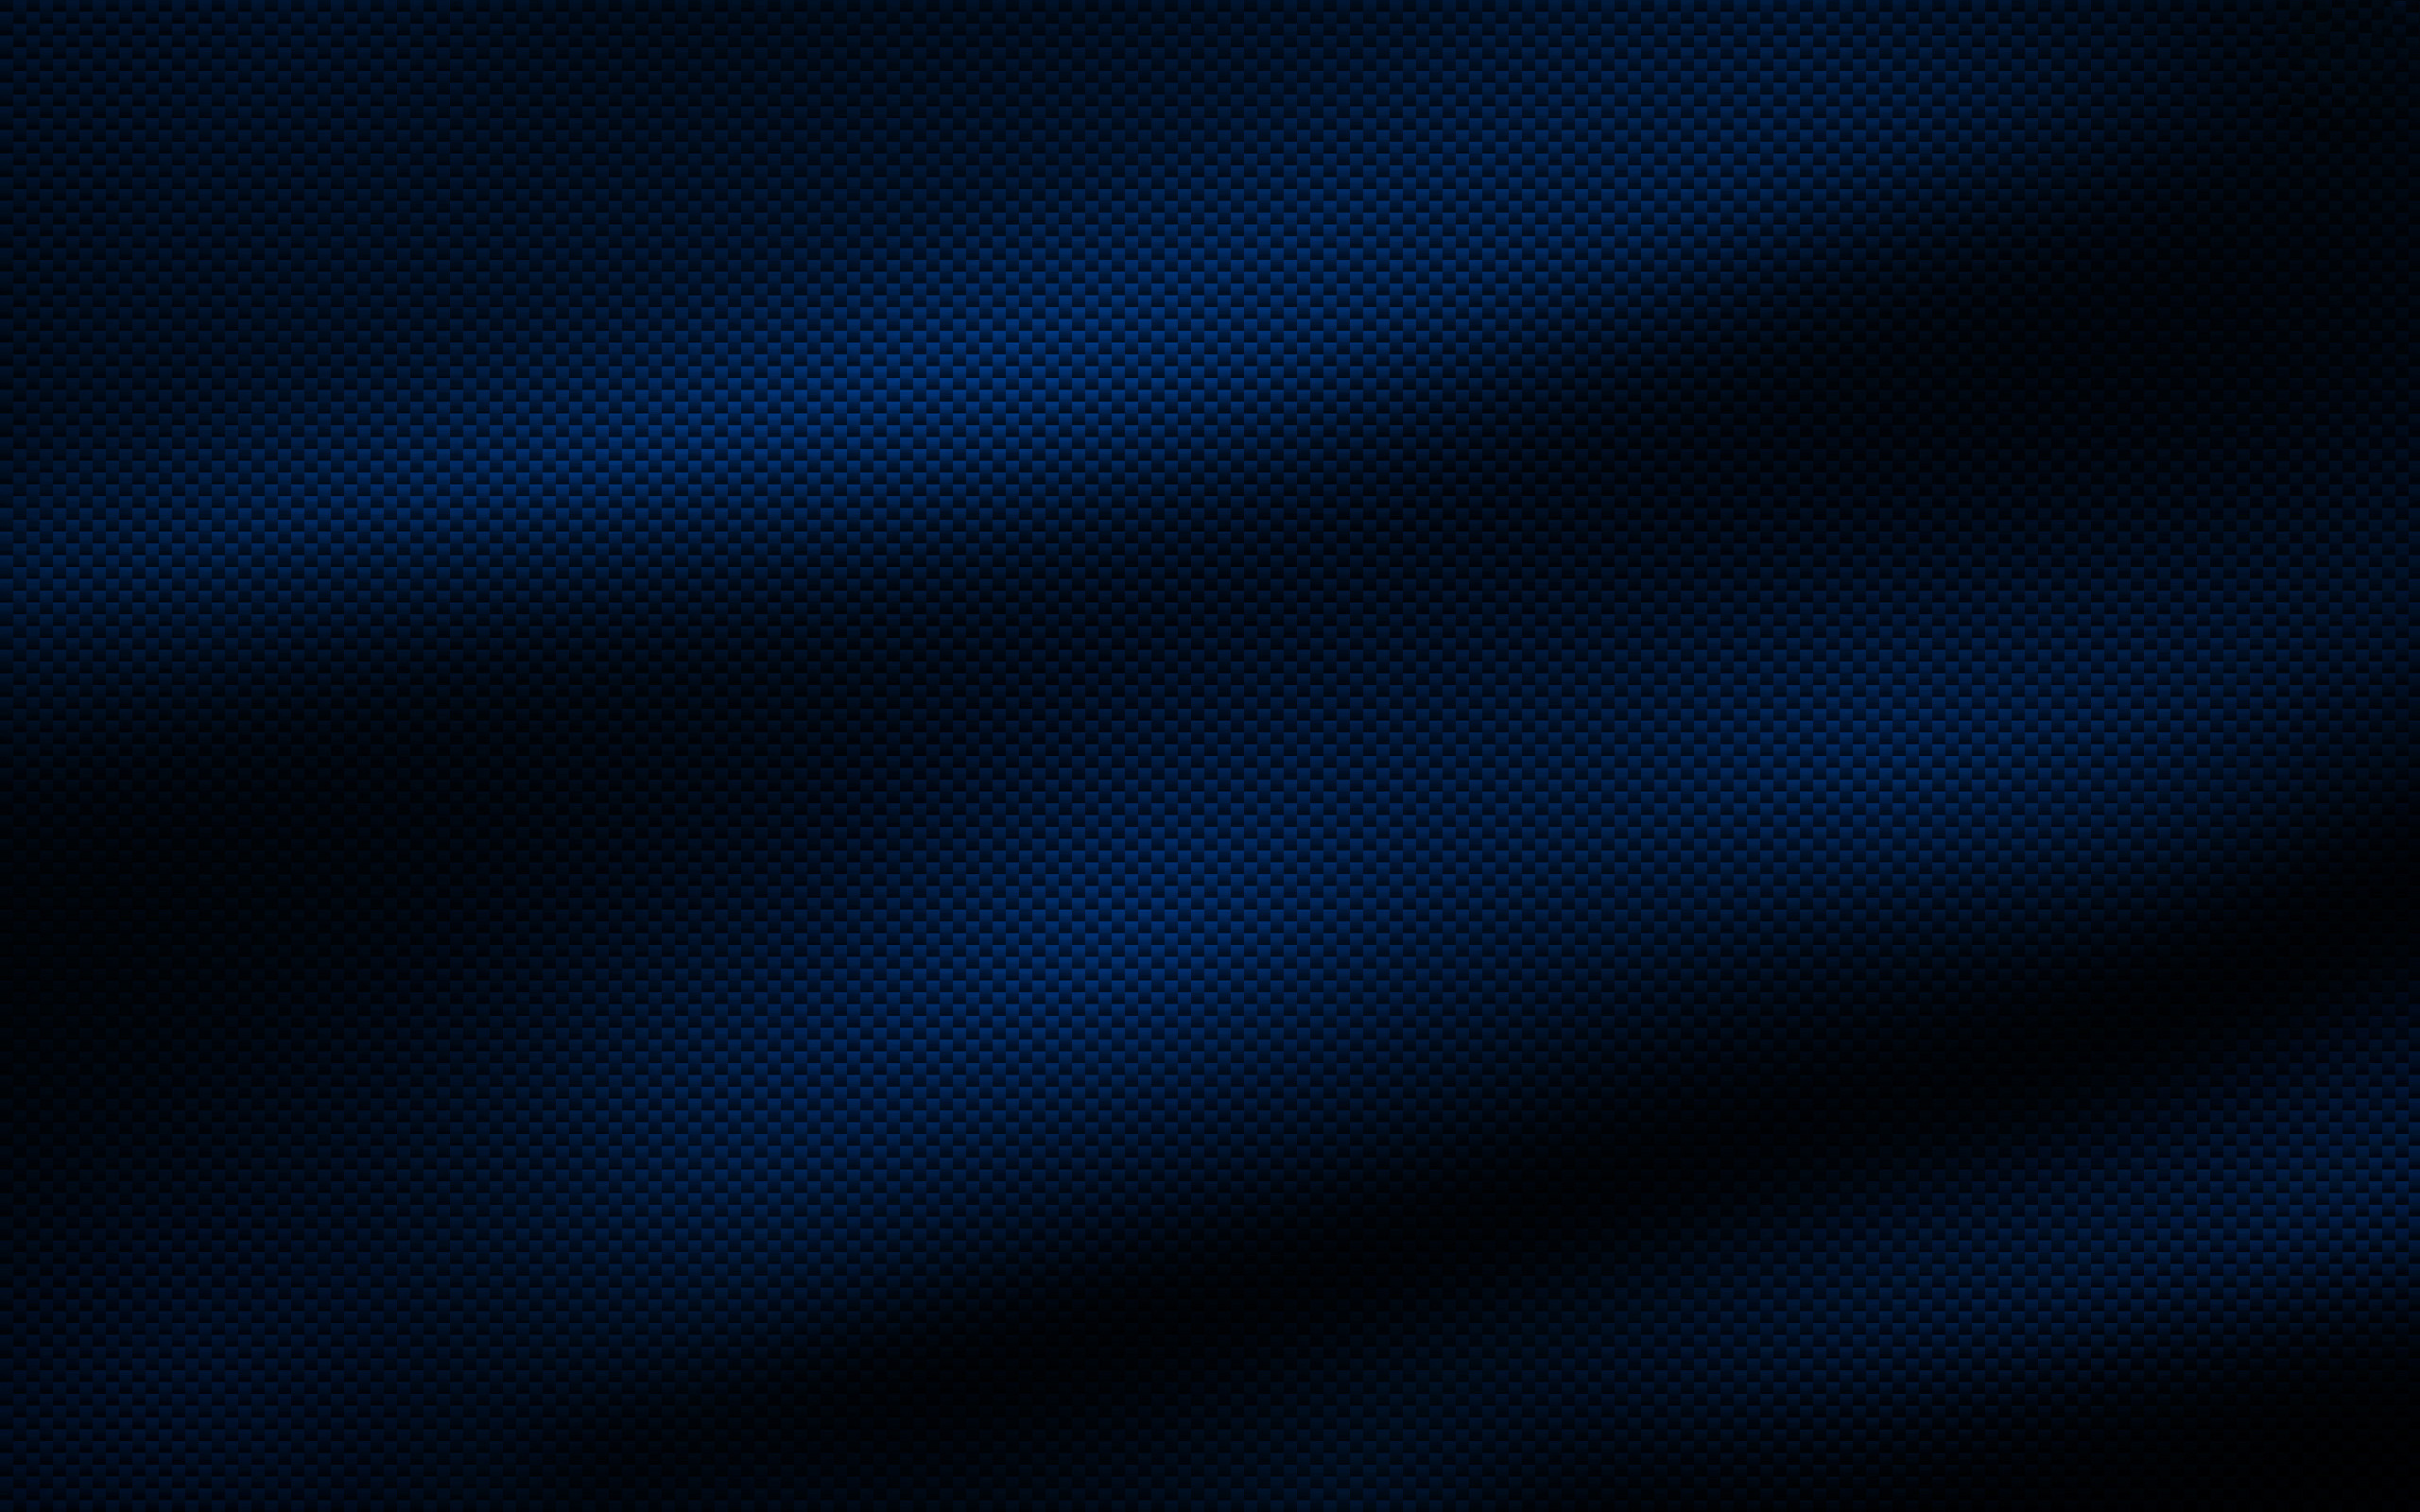 blue-carbon-fiber-wallpaper-hd-free-download | wallpaper.wiki